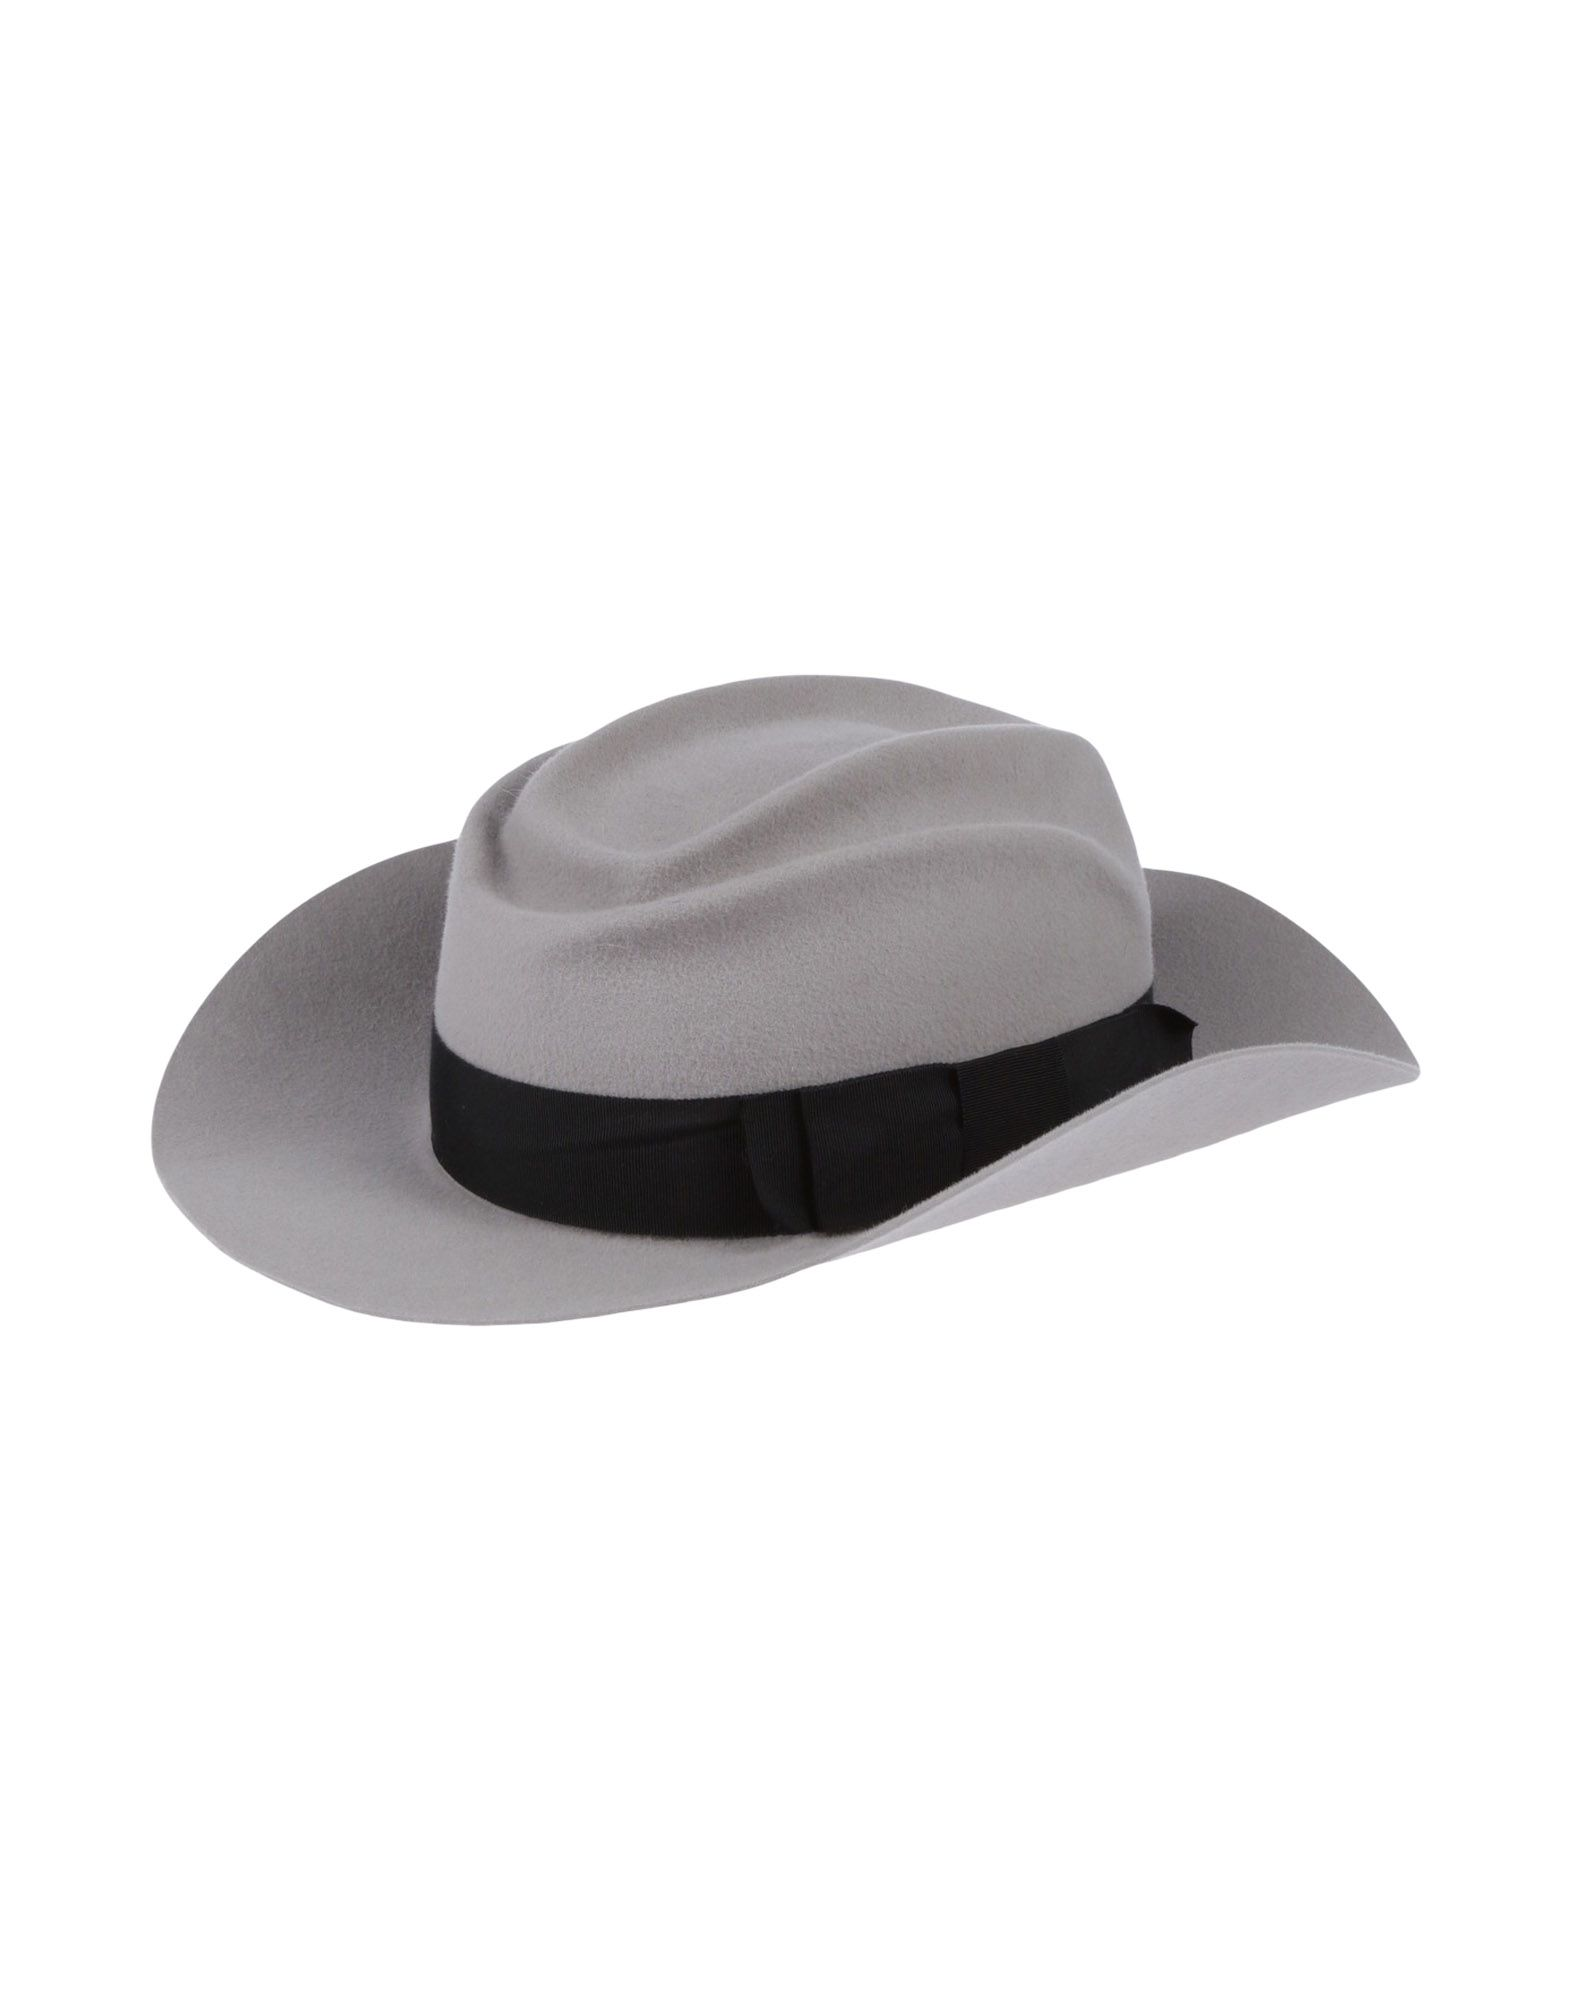 GLADYS TAMEZ Hat in Light Grey